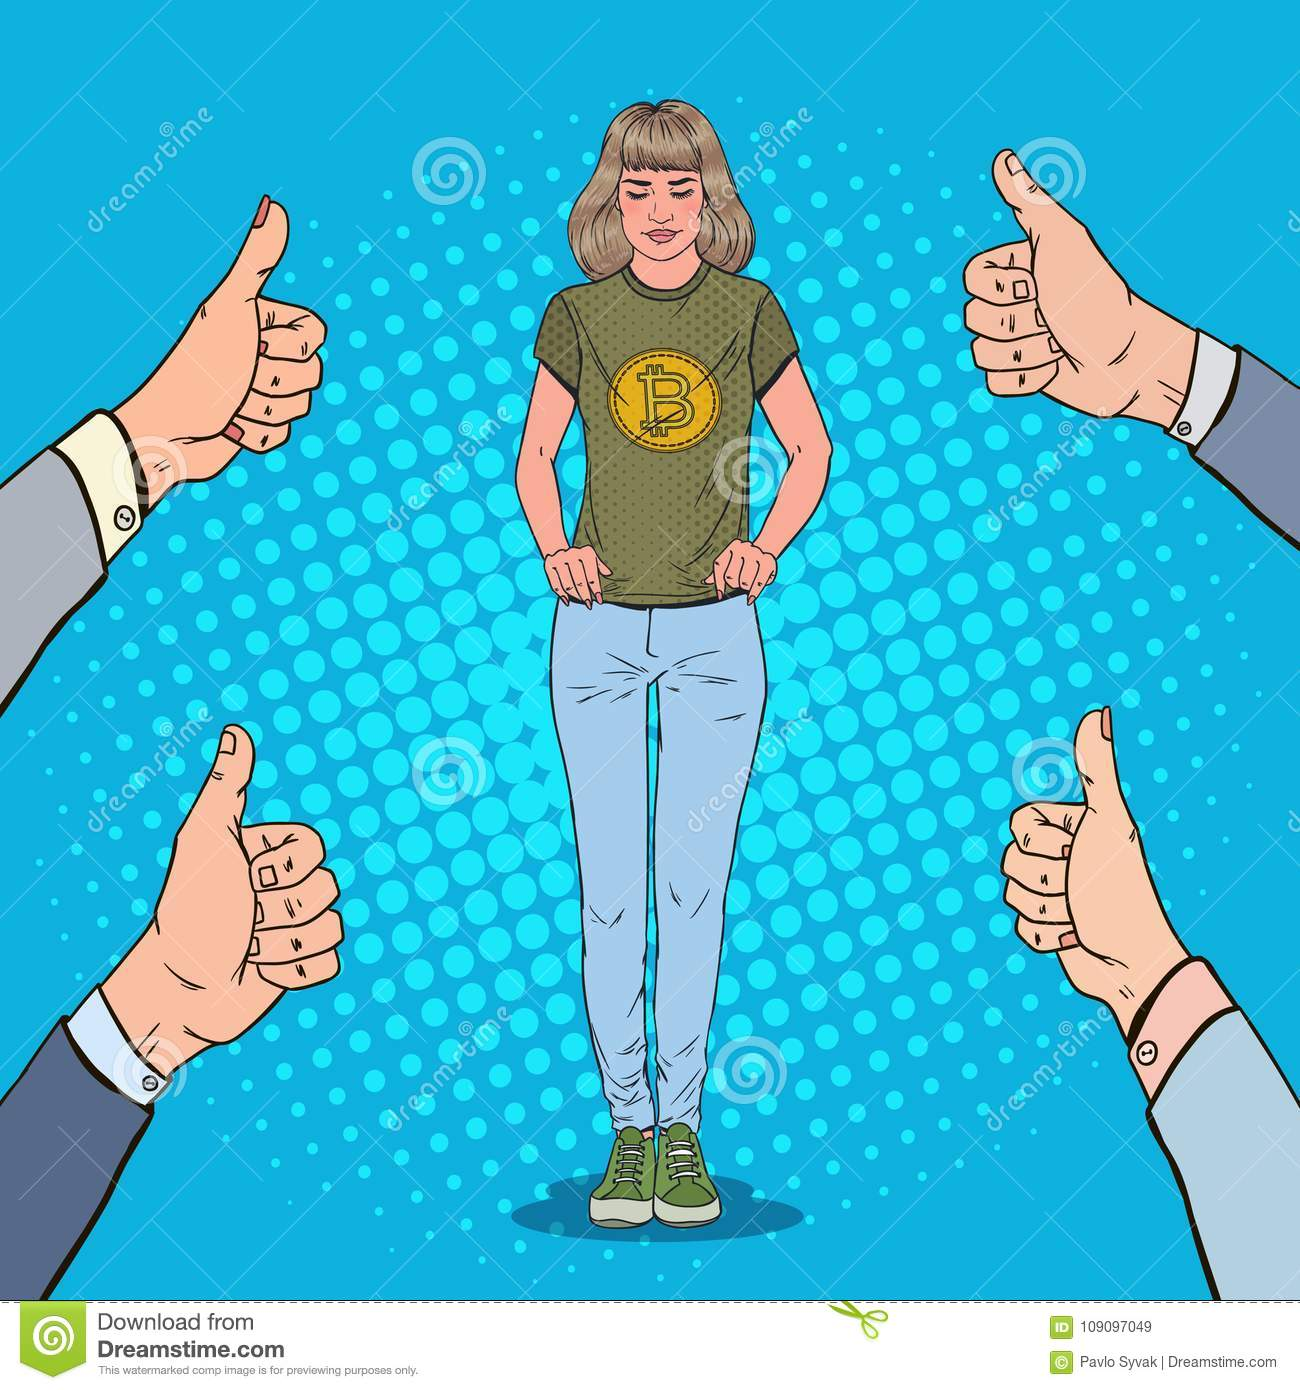 Pop Art Young Woman Wearing In T-shirt With Bitcoin Print With Hands